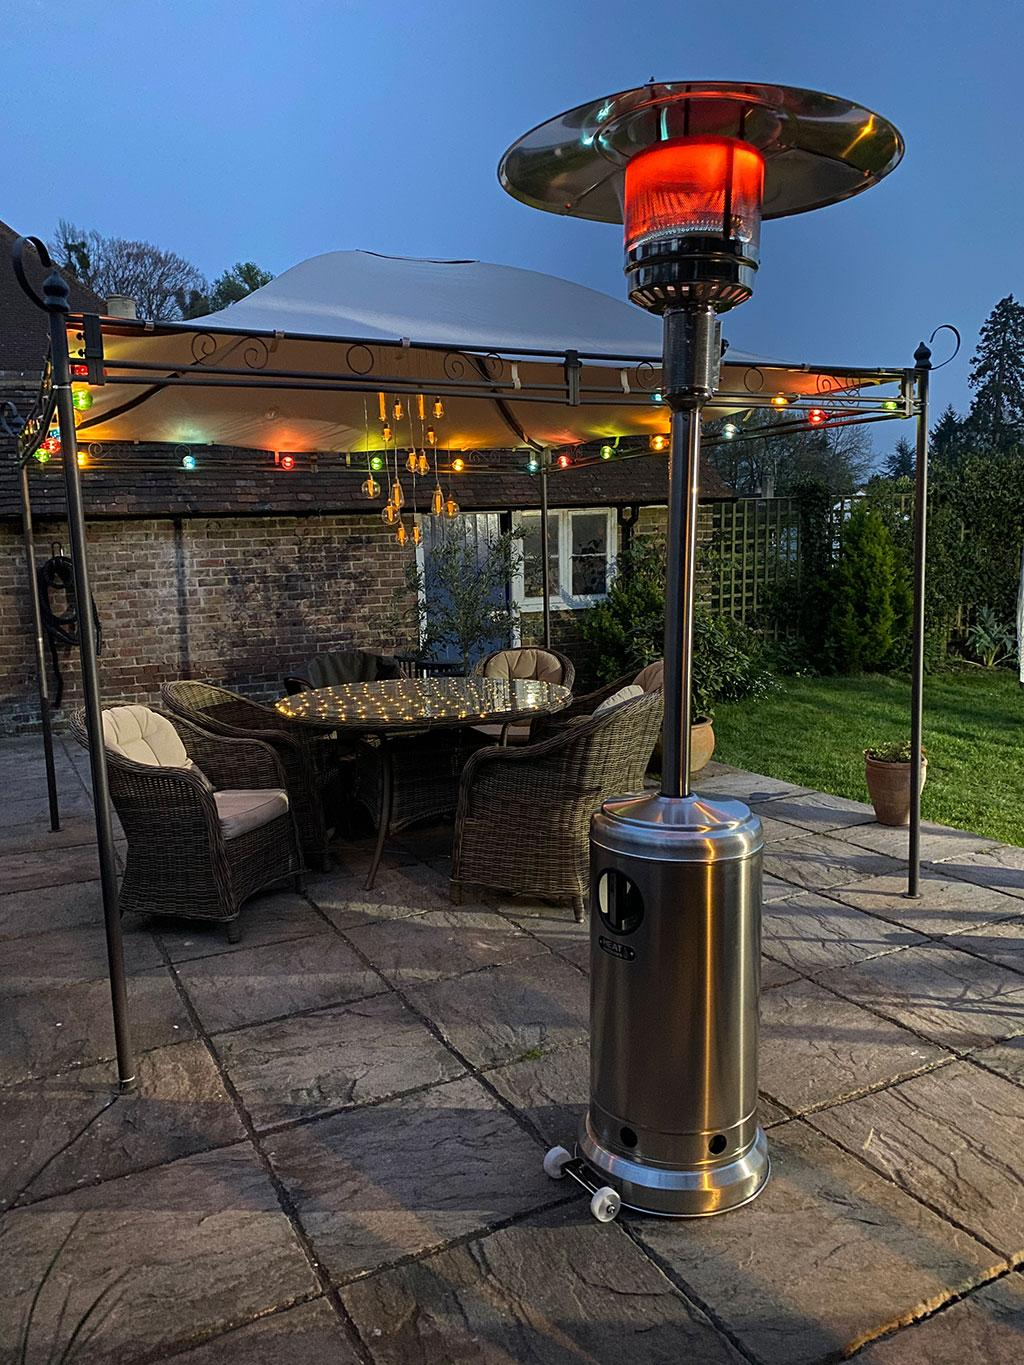 Sherpa Patio heater for the home and restaurant